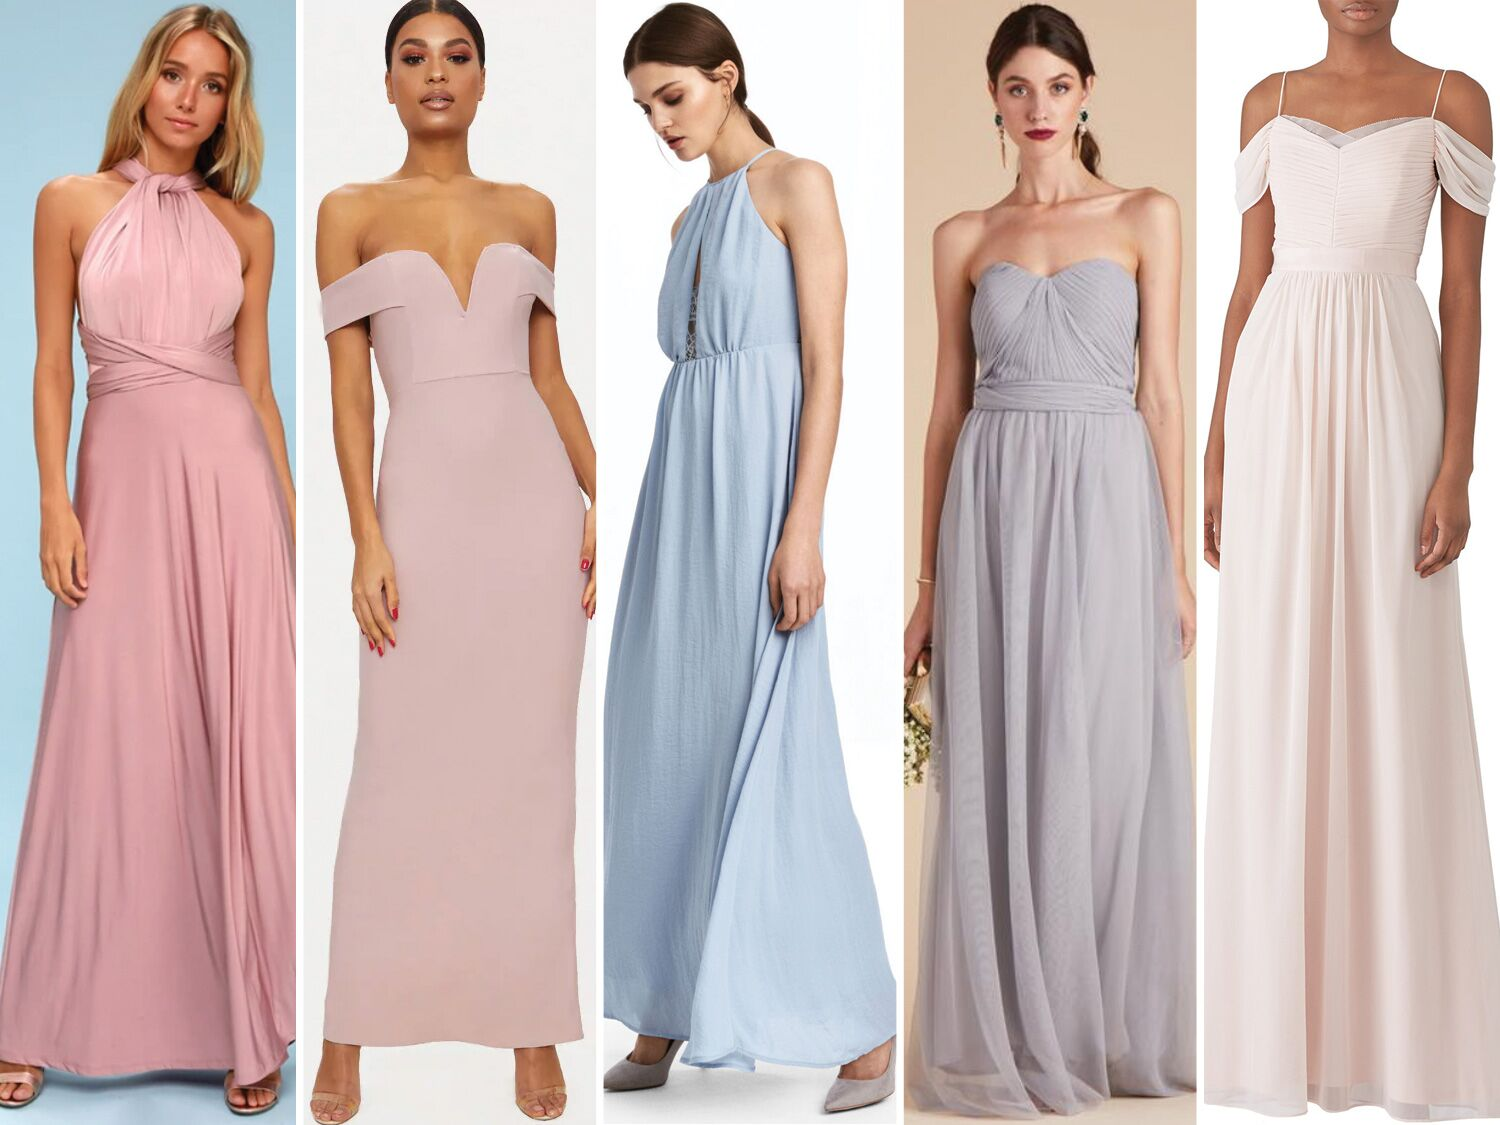 d555621267462 55 Affordable Bridesmaid Dresses That Don t Look Cheap